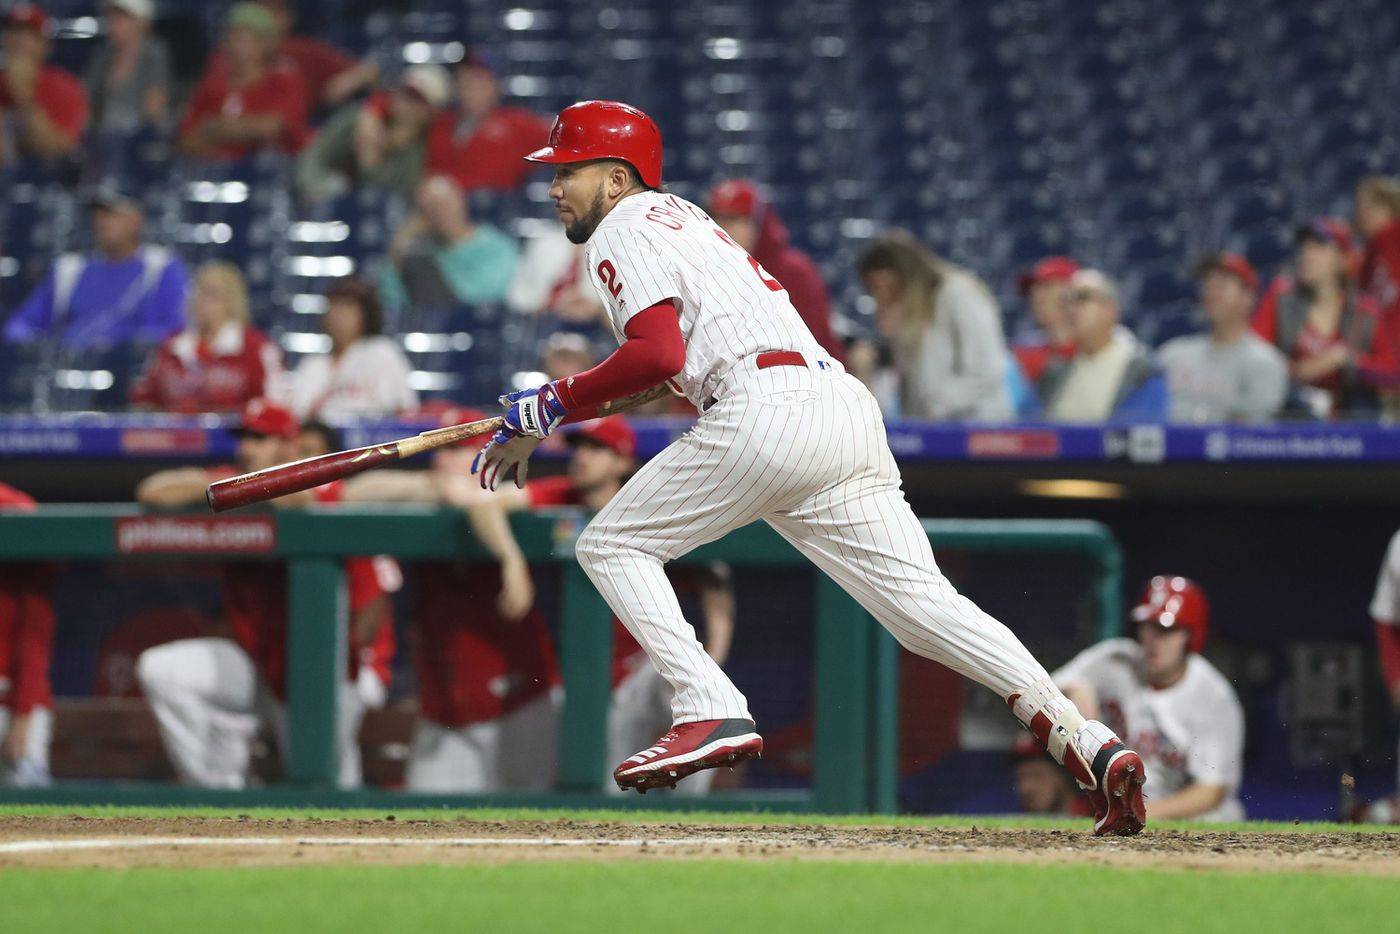 Phillies struggling to find time for J.P. Crawford